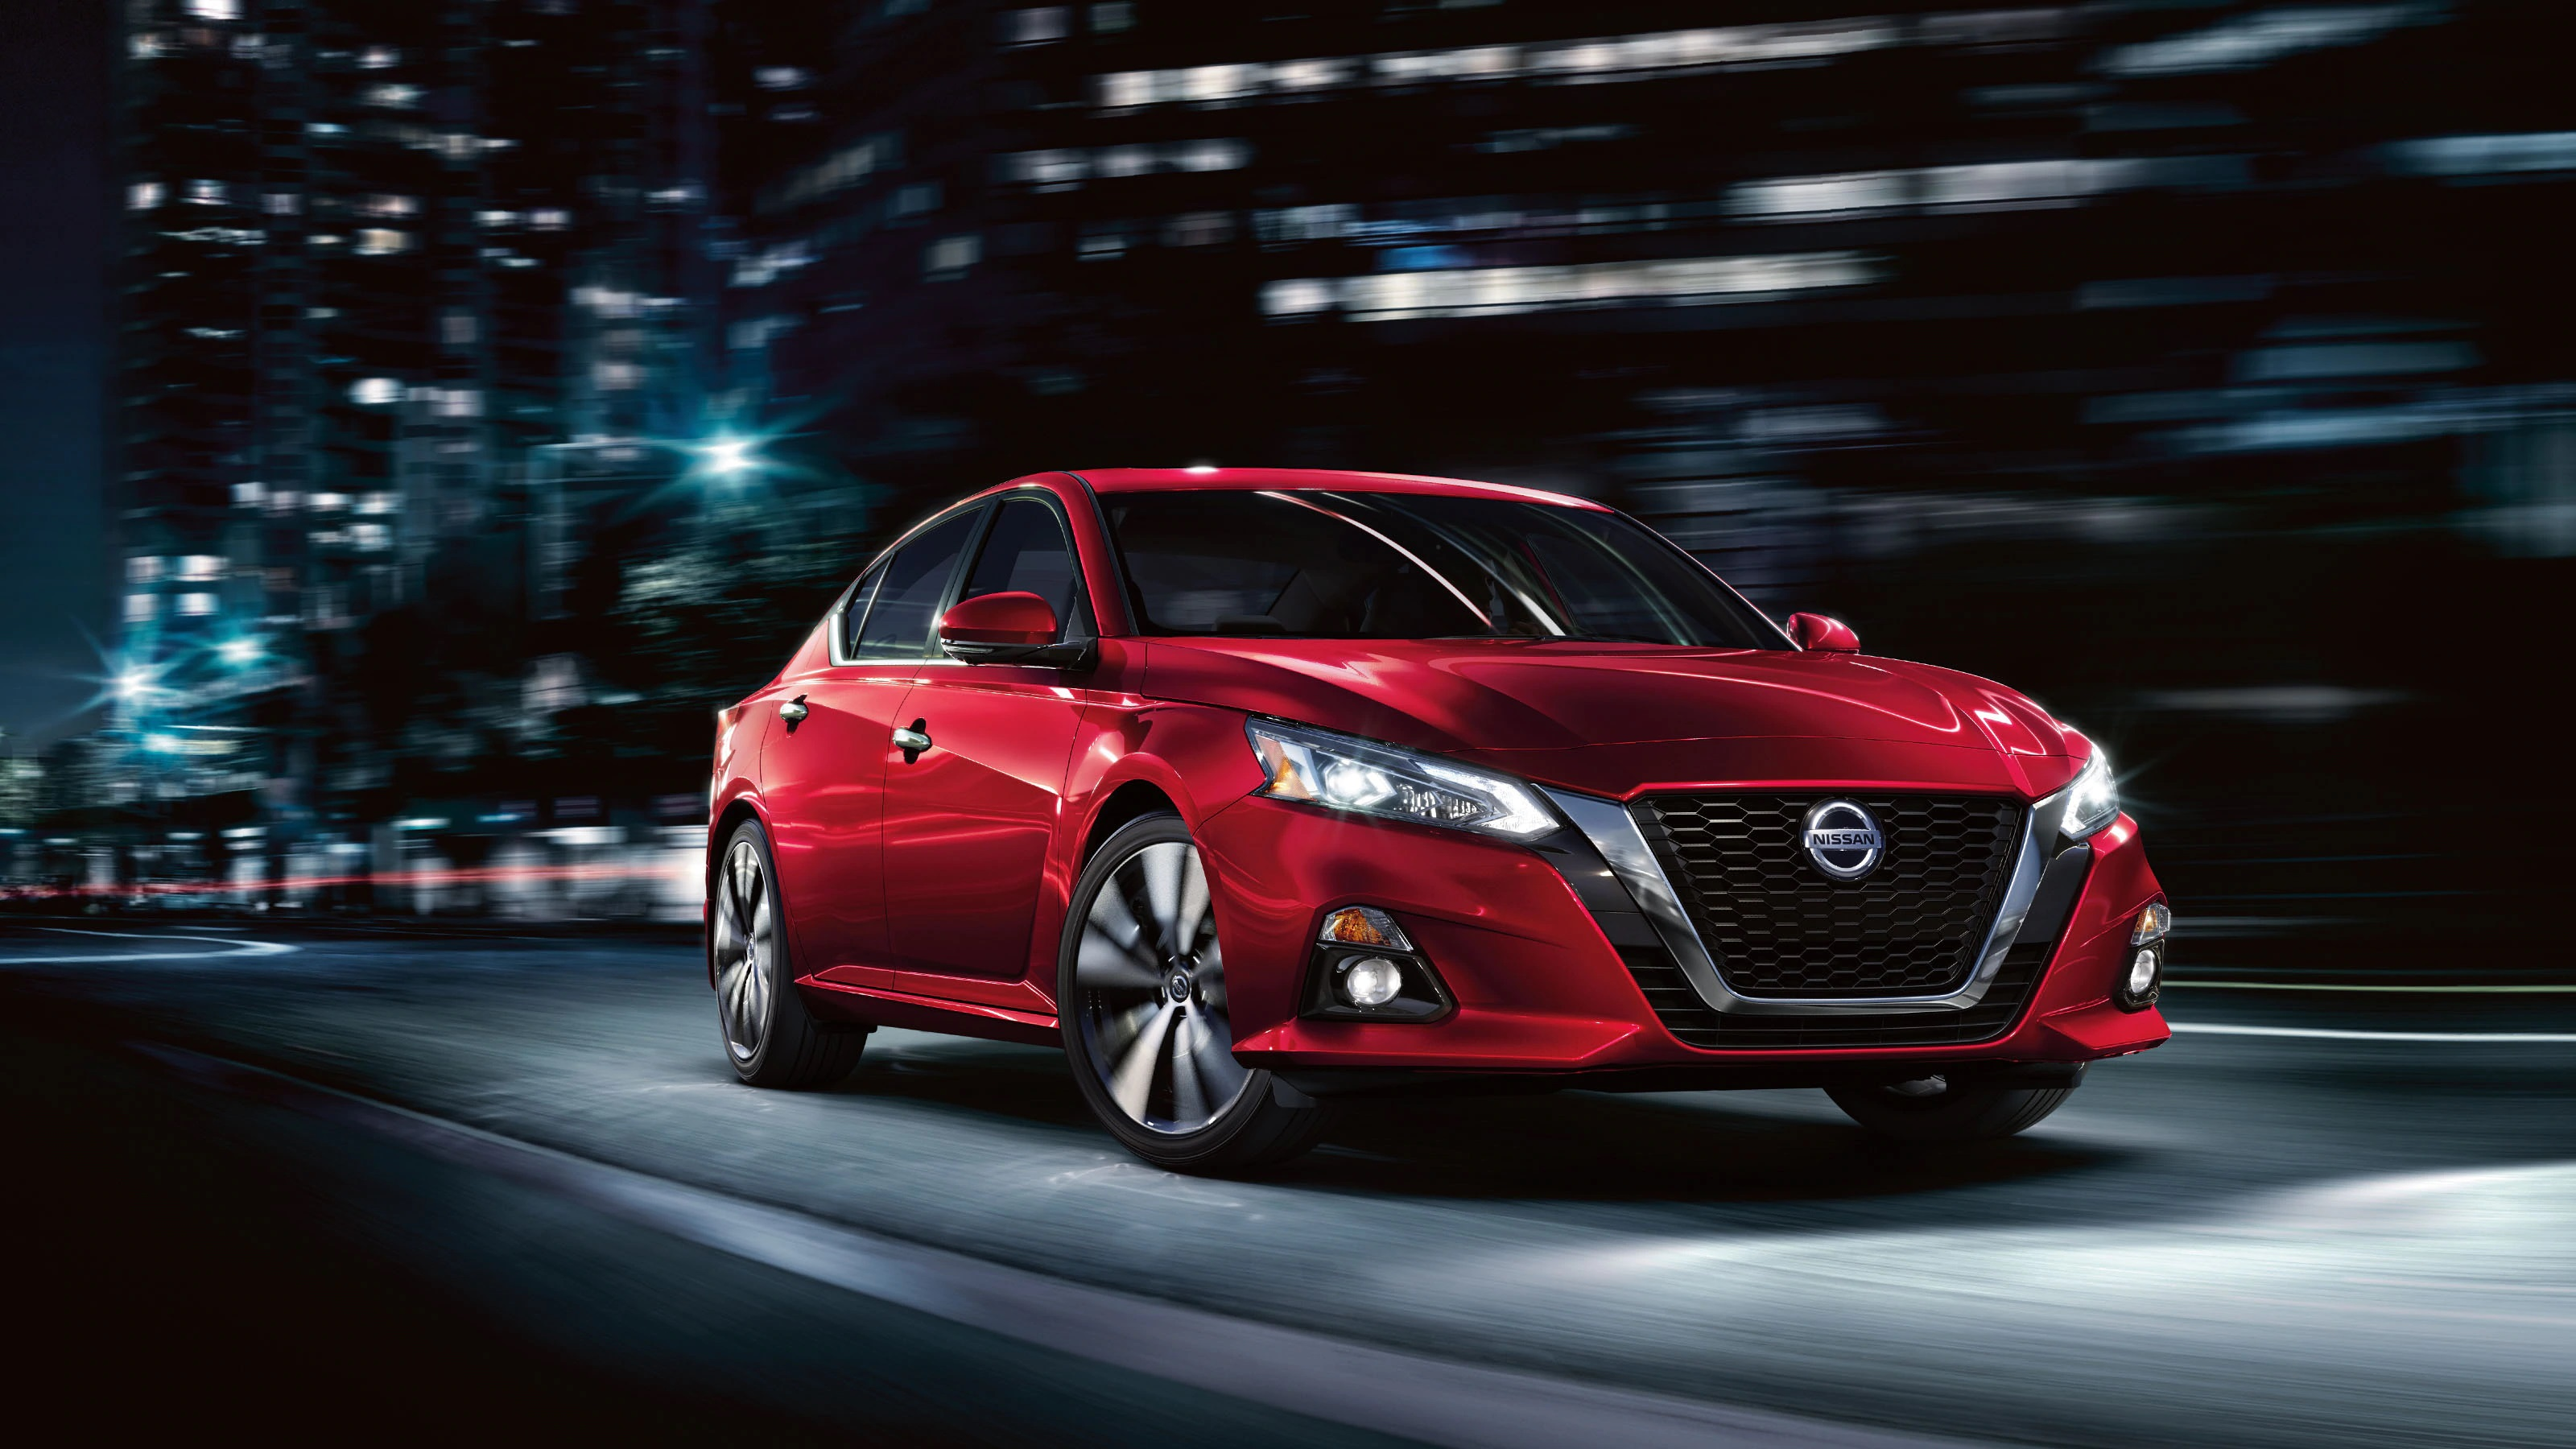 2020 Nissan Altima for Sale near Tinley Park, IL